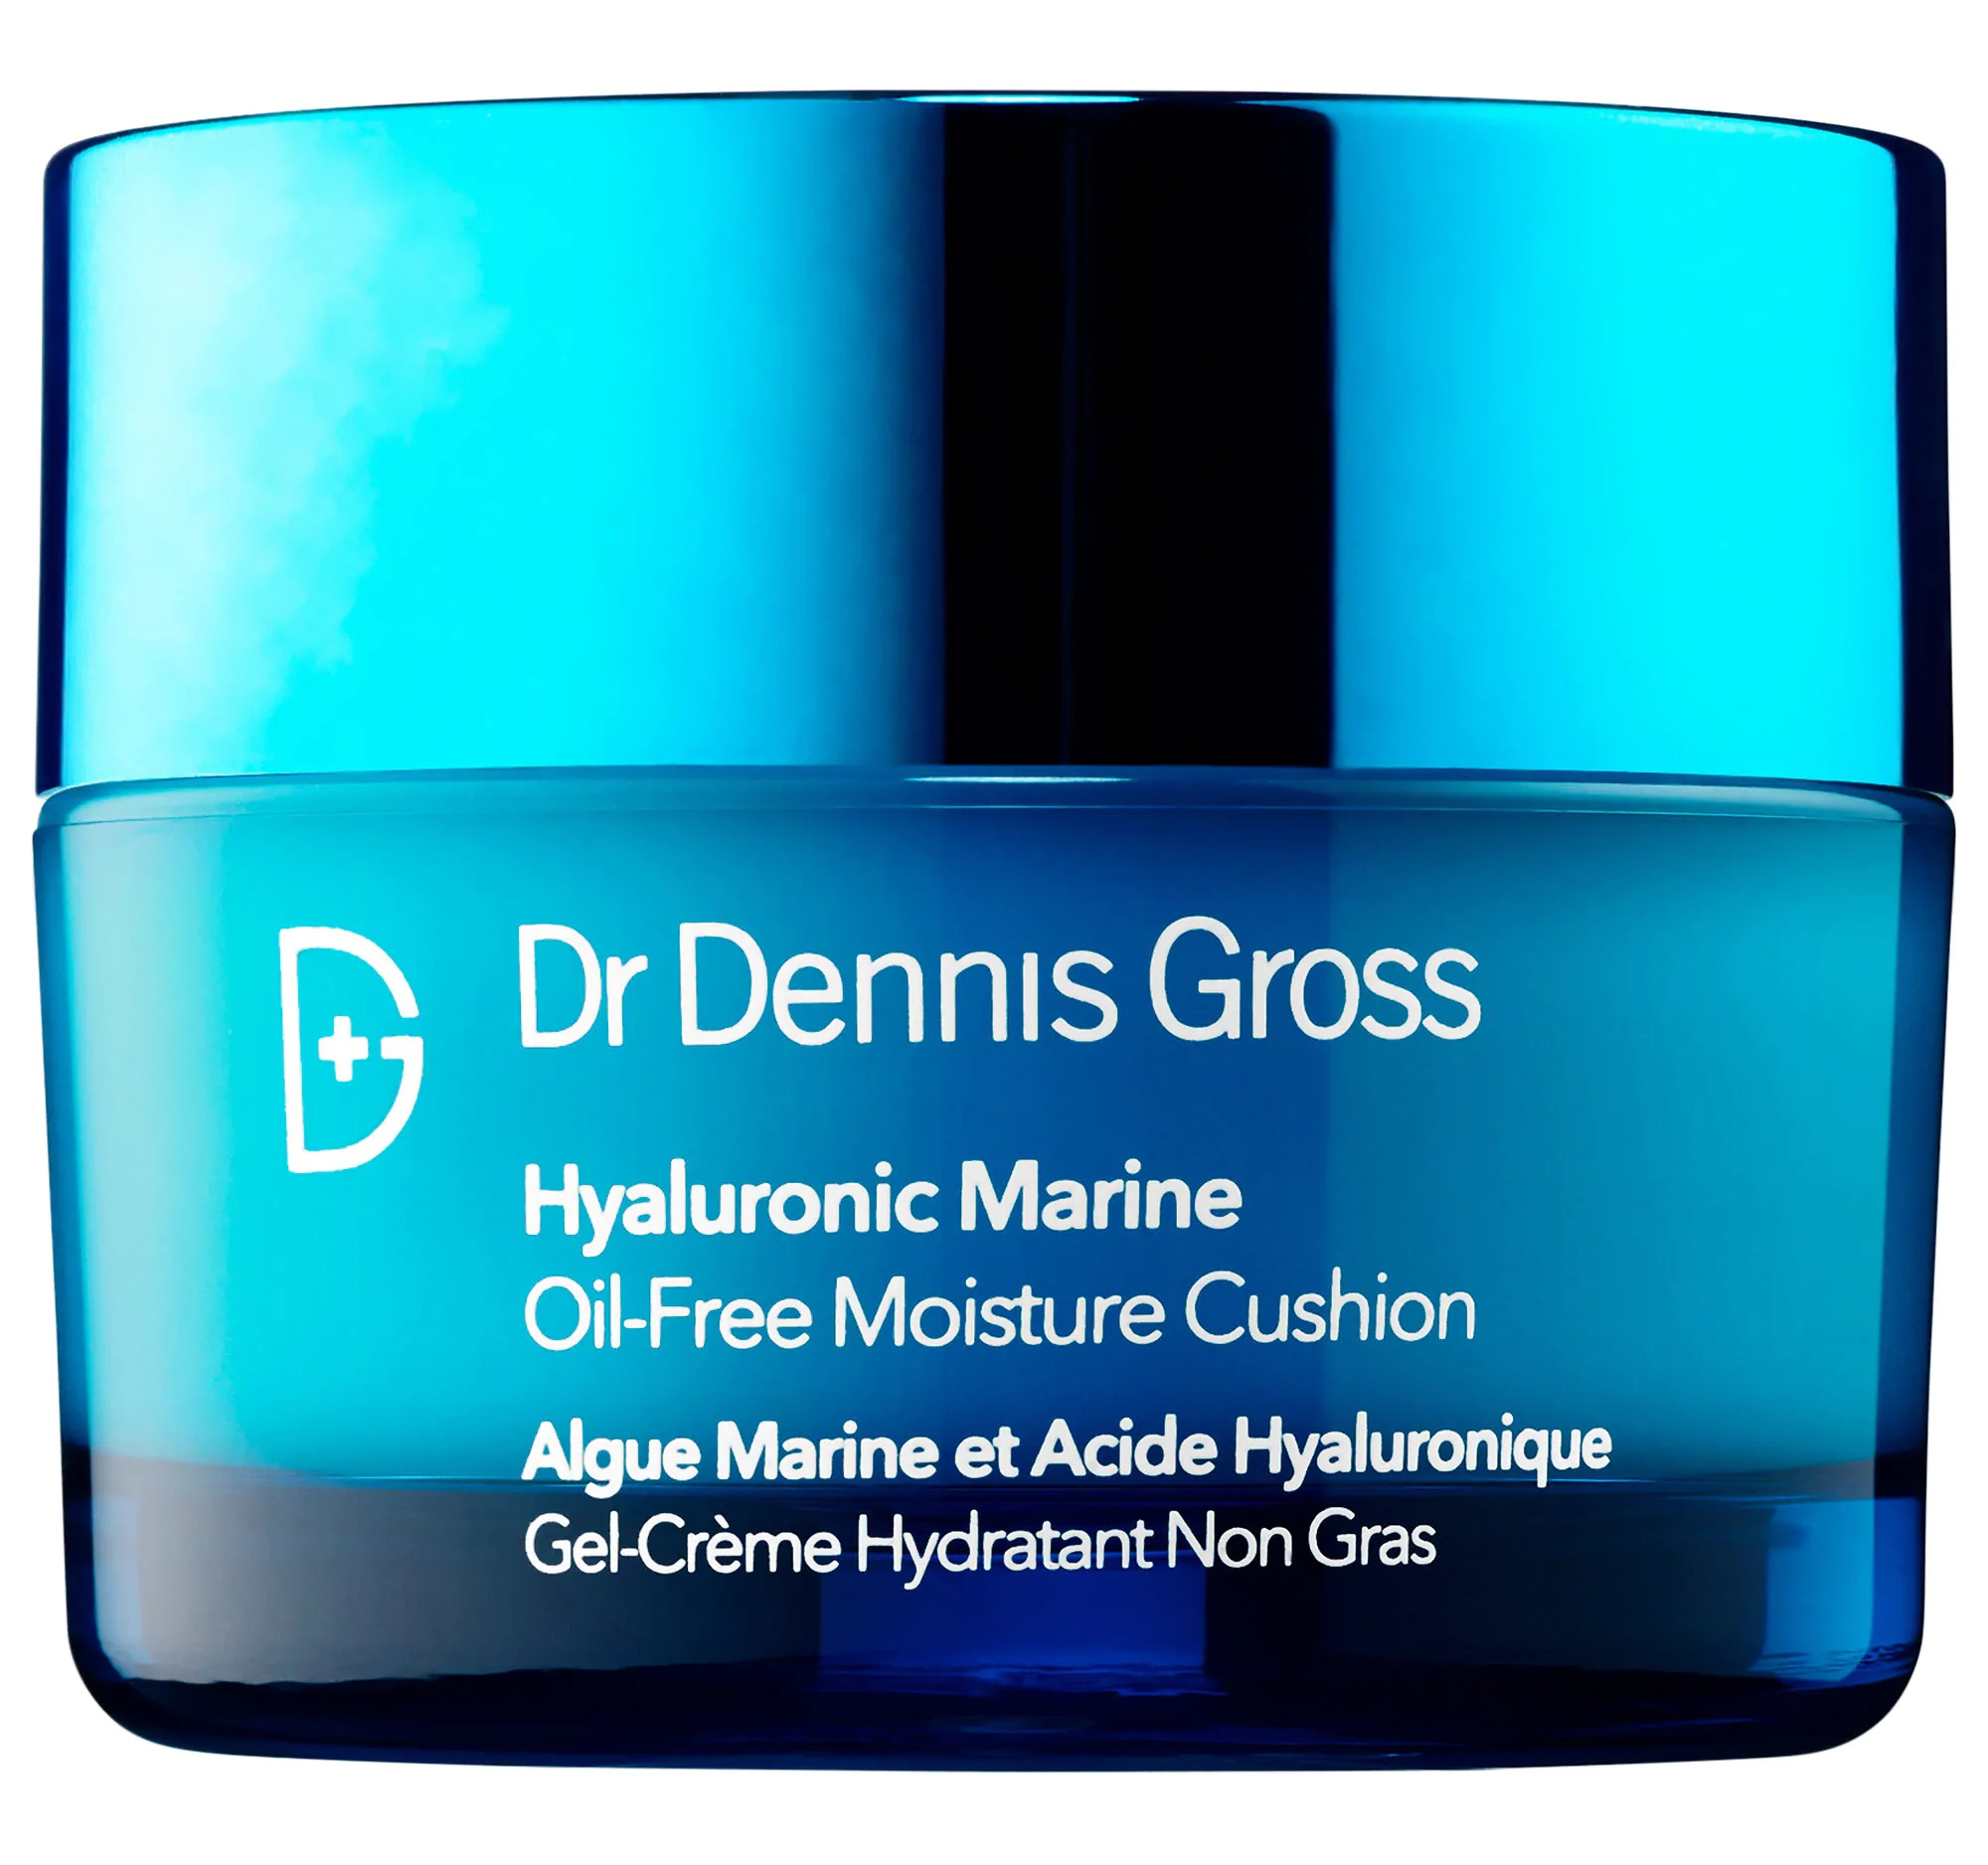 Dr Dennis Gross Hyaluronic Marine™ Oil-Free Moisture Cushion